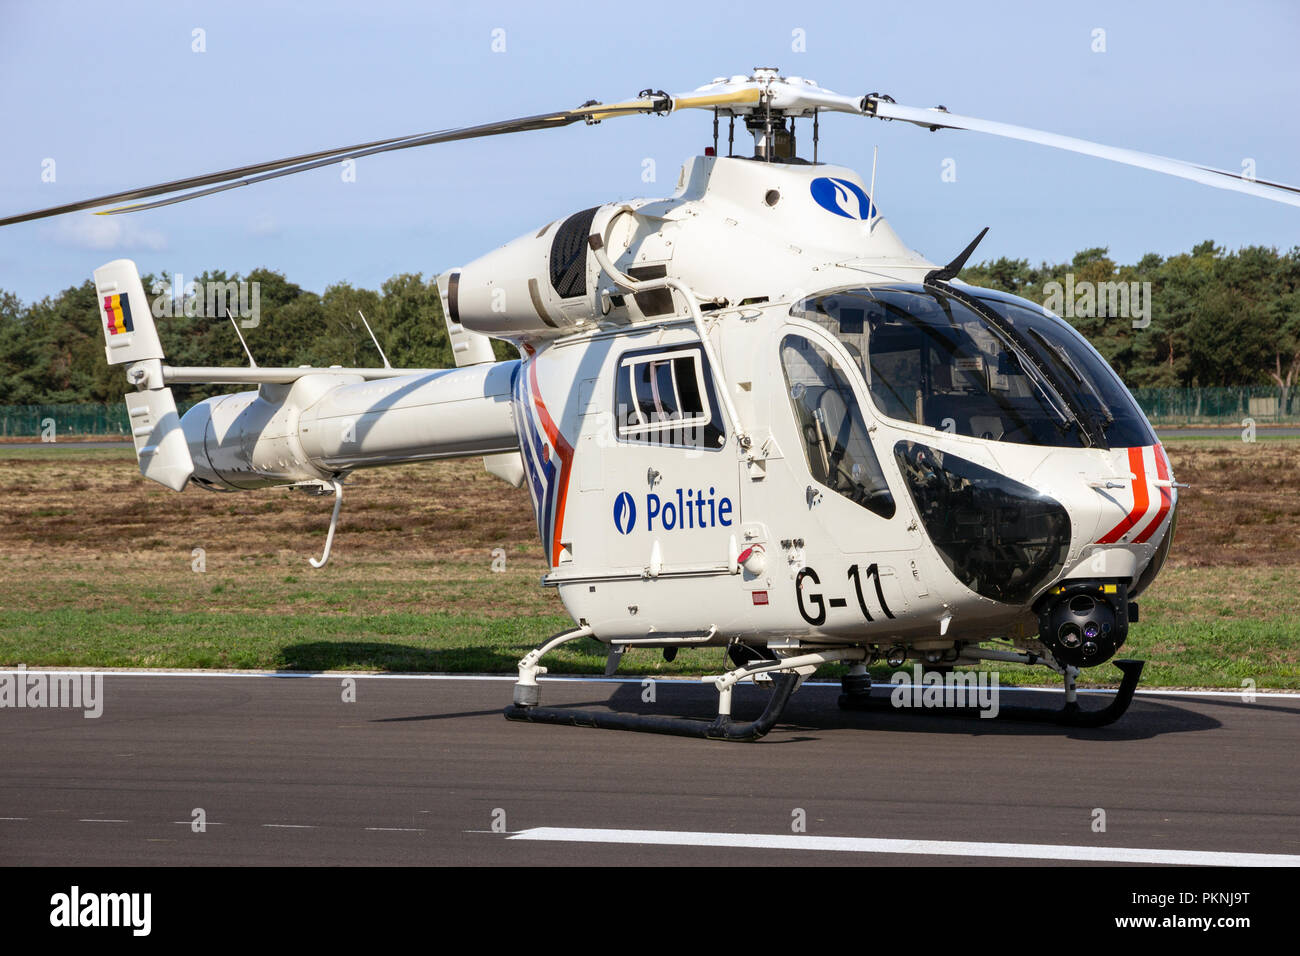 KLEINE BROGEL, BELGIUM - SEP 8, 2018: MD 902 Explorer helicopter from the Belgian Federal Police on the tarmac of Kleine-Brogel Airbase. Stock Photo